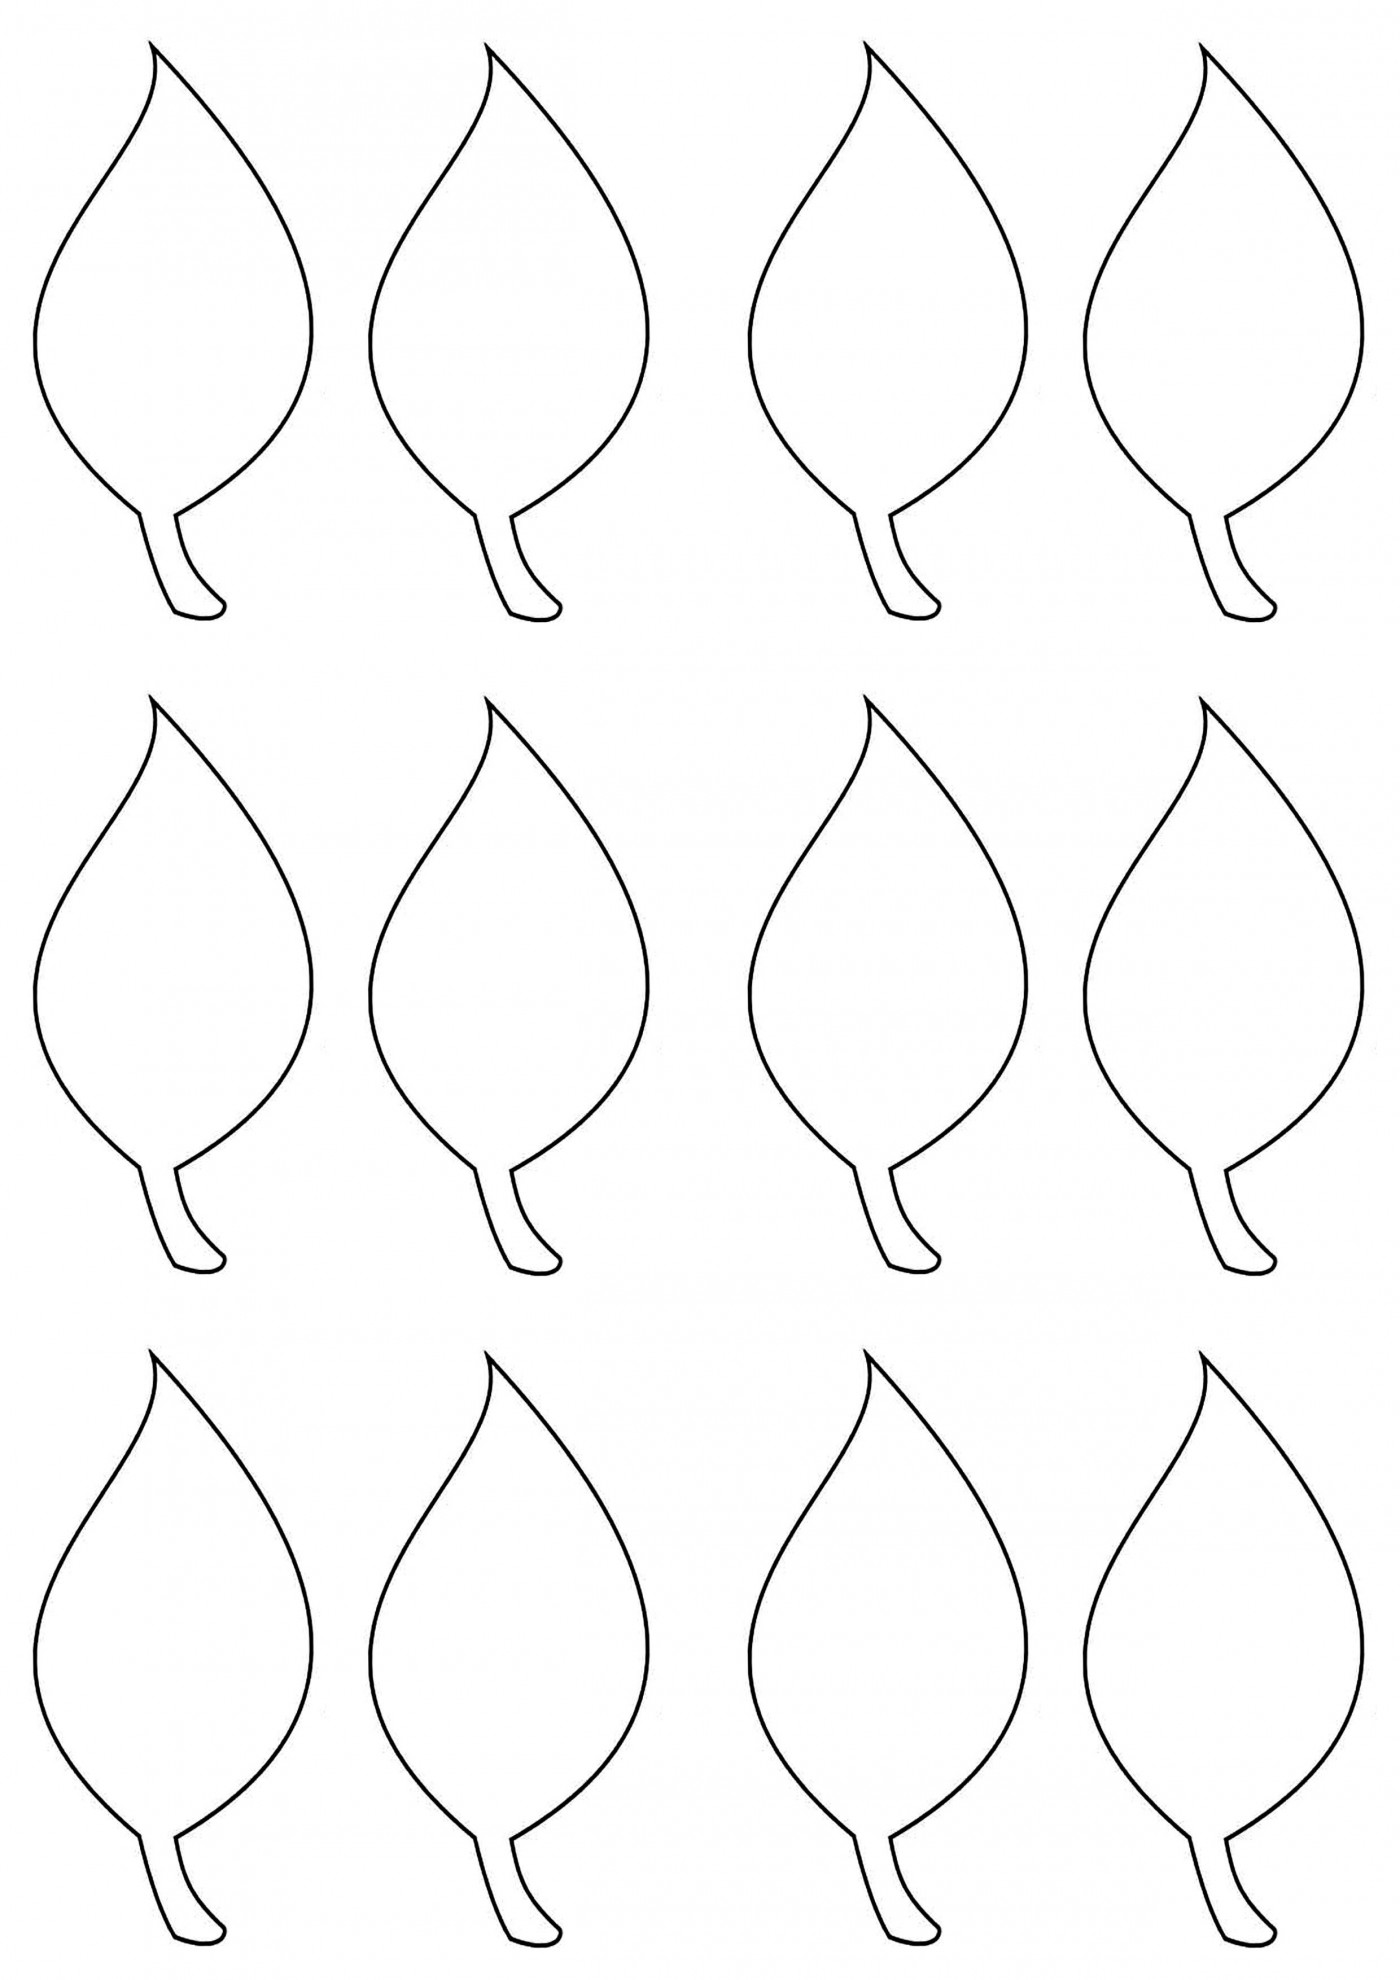 003 Simple Leaf Template With Line Sample  Fall Printable Blank1400